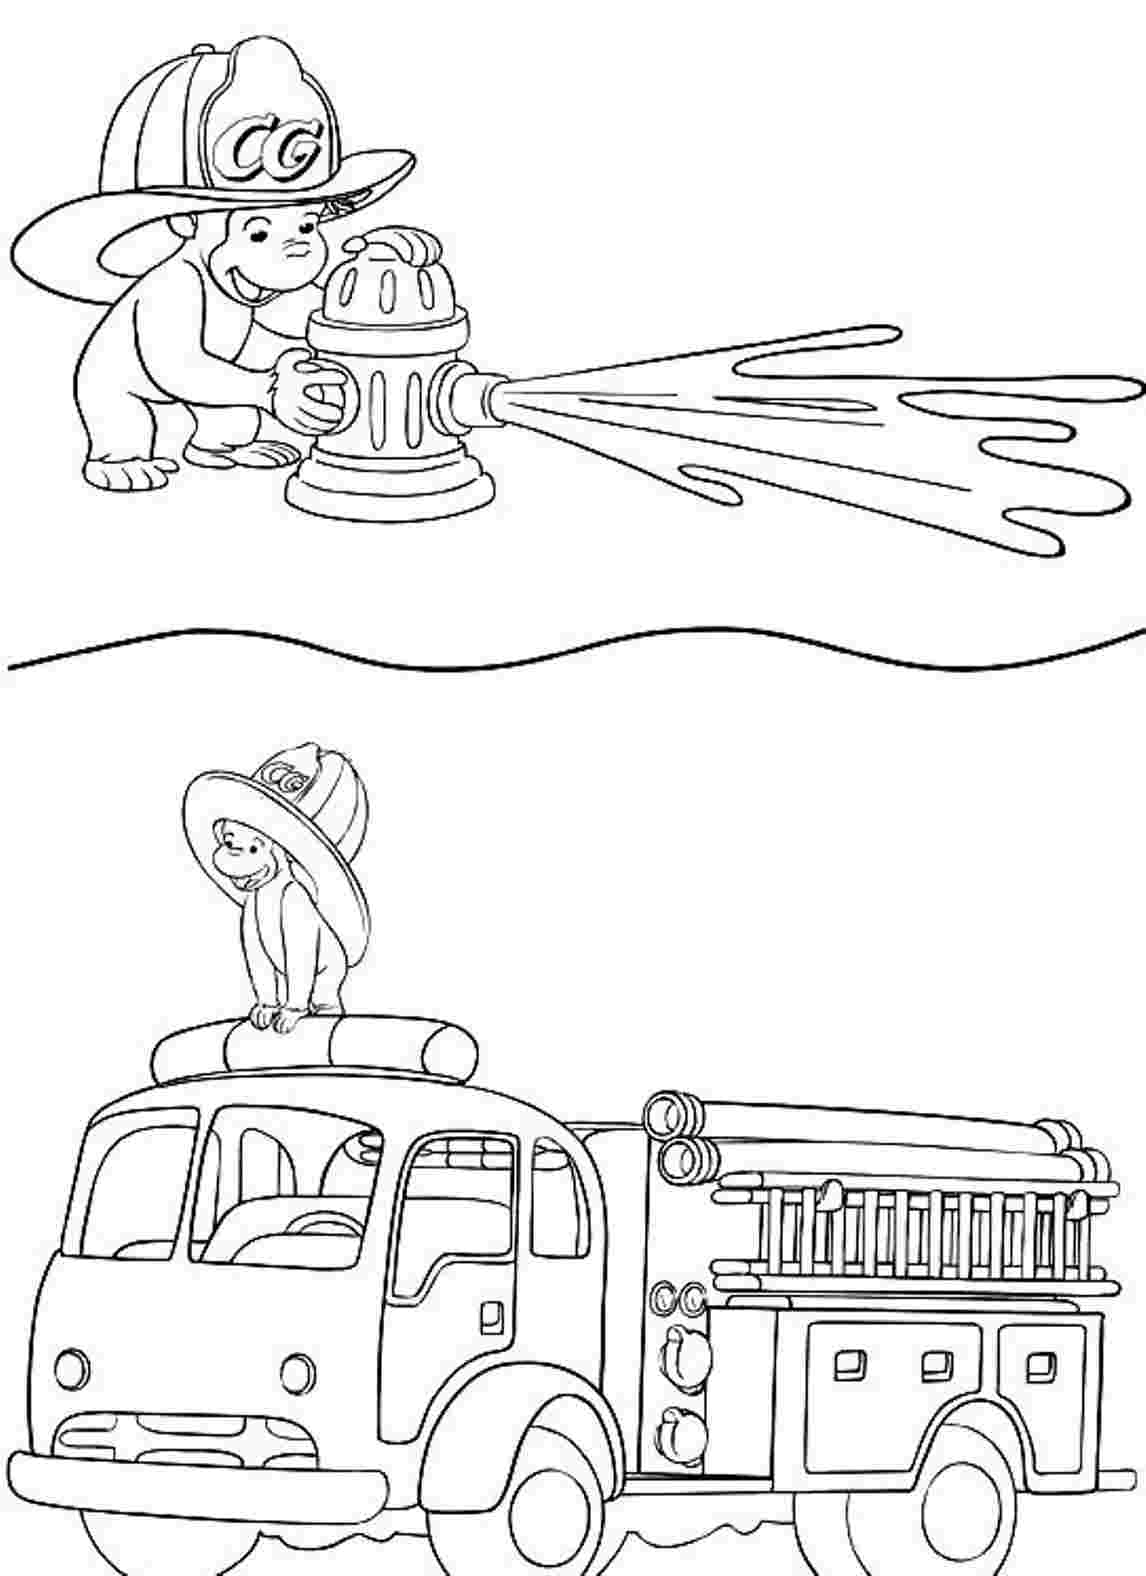 tanker truck coloring page water tanker truck coloring page coloring pages tanker page coloring truck